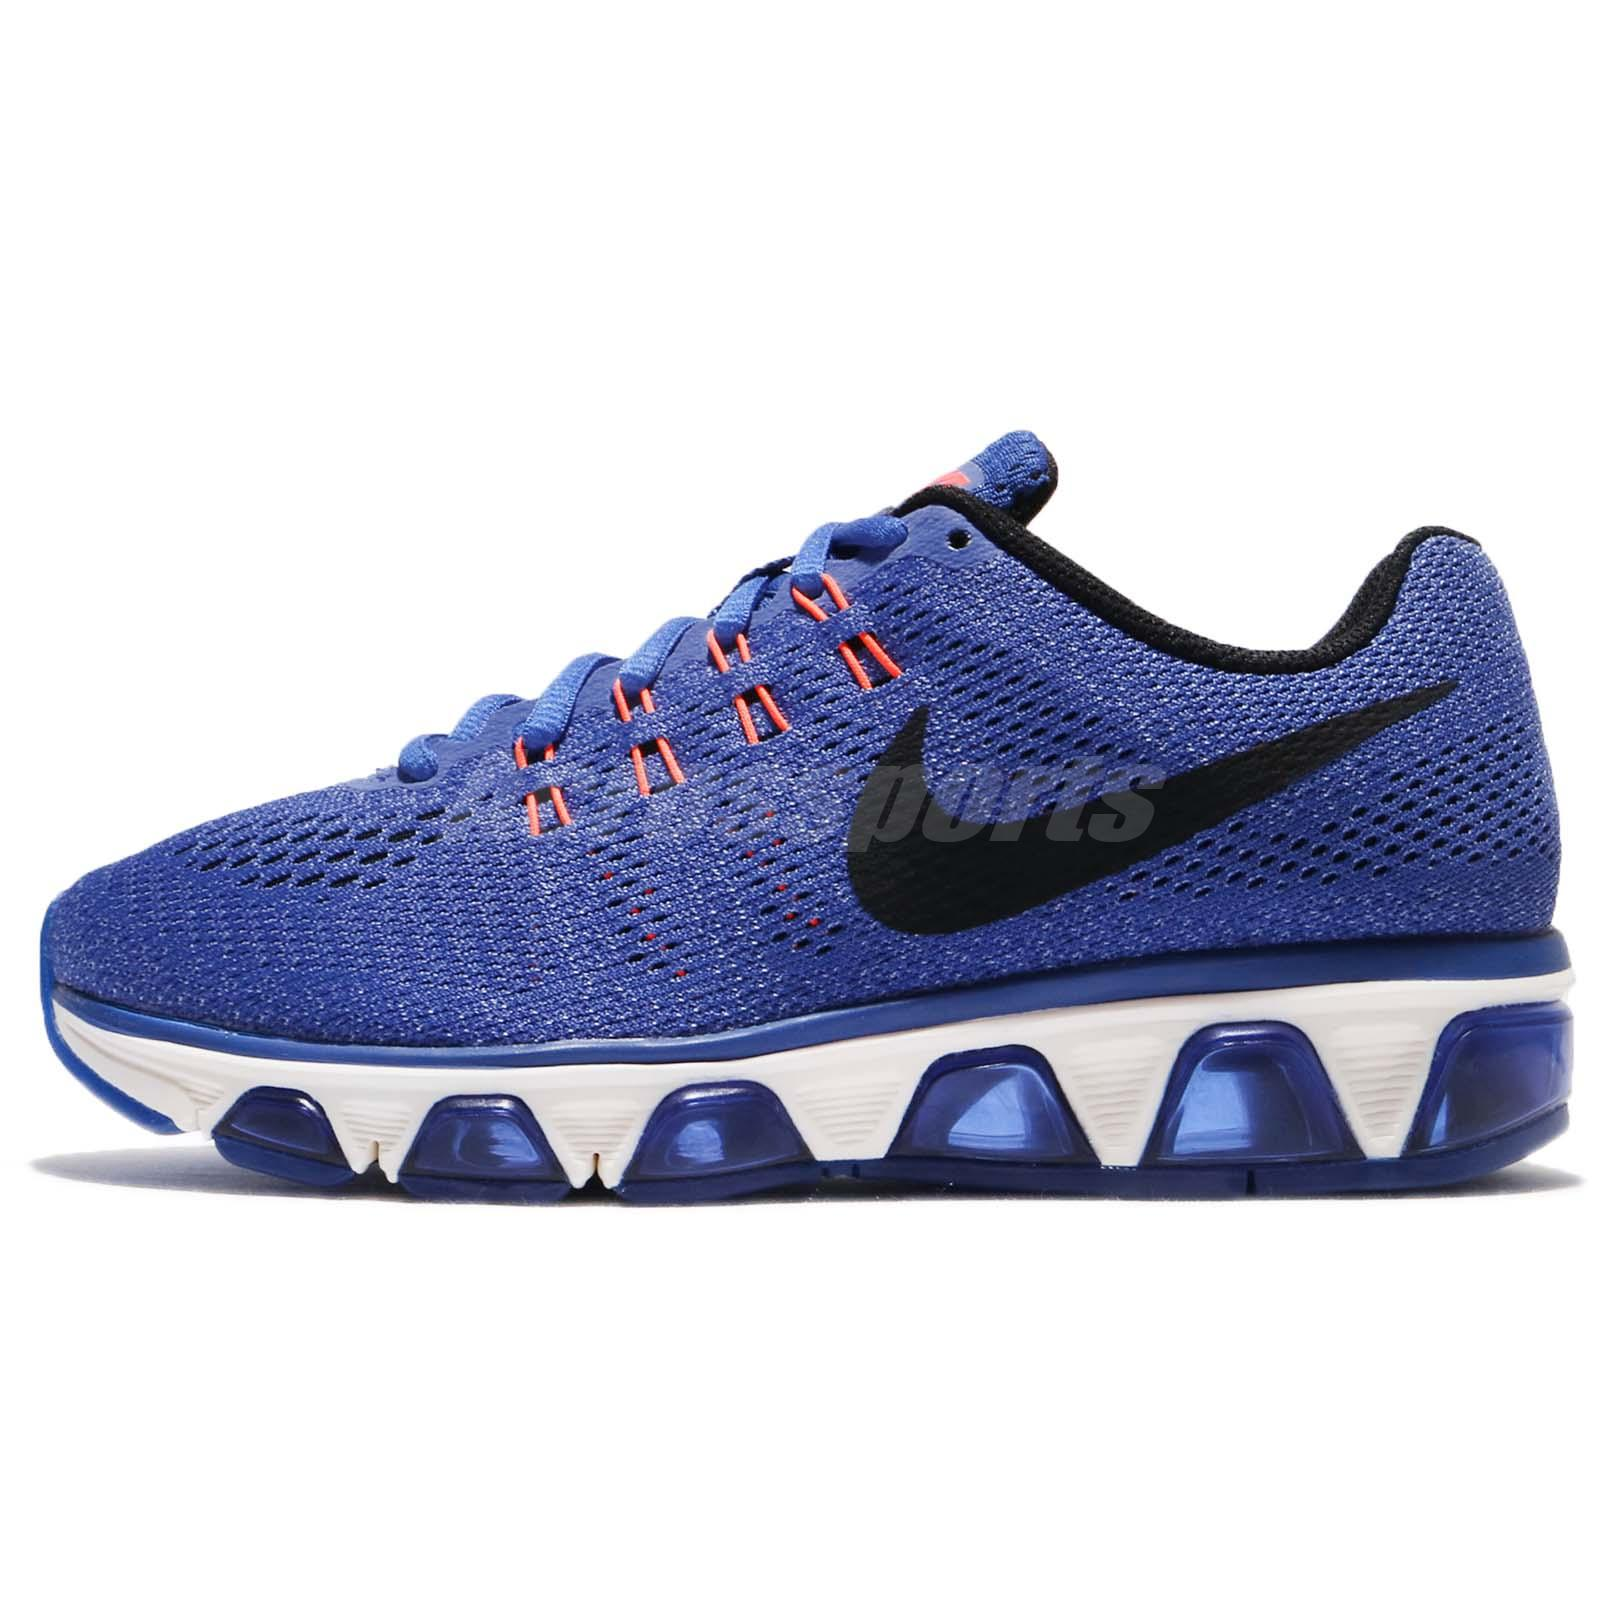 newest 4ac5a 85885 Nike Air Max Tailwind 8 VIII Racer Blue Womens Running Shoes Sneakers  805942-408